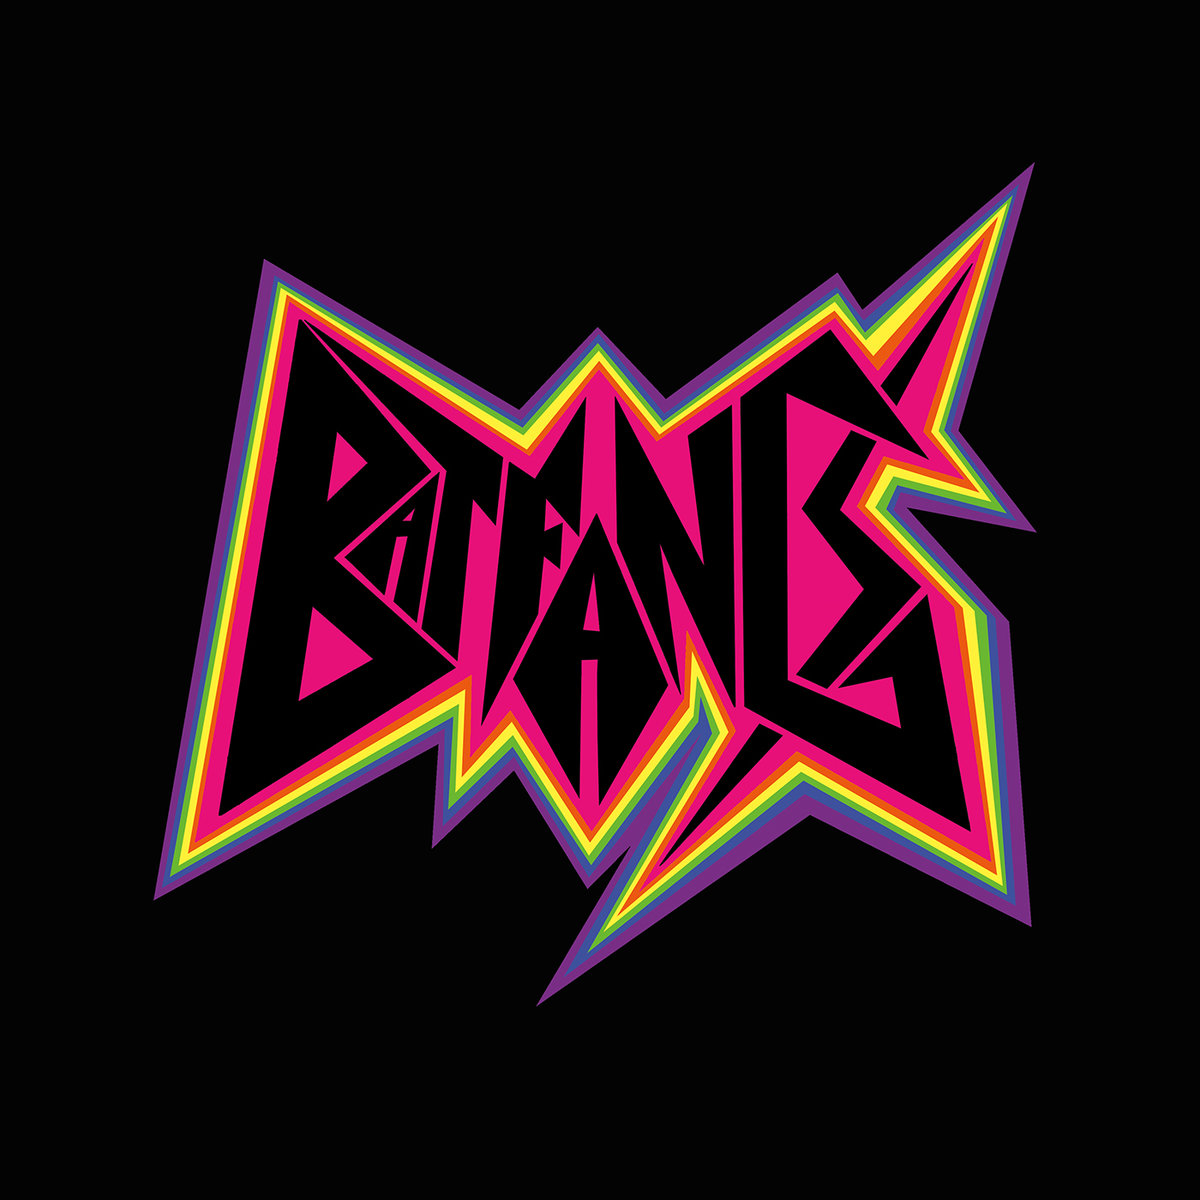 BAT FANGS - Bat FangsFebruary 7thWe've been telling you all year: 2018 is the year of badass women teaching us how to rock again. Early in the year, Betsy Wright and Laura King came out screaming this message. On my first listen to this self-titled debut, I had no idea two people could slam so many hooks and ear-splitting solos into 25 minutes. Not only is this record loud enough to get your blood pumping and short enough to last a quick workout, but it's also a hell of lot of fun.-JCB